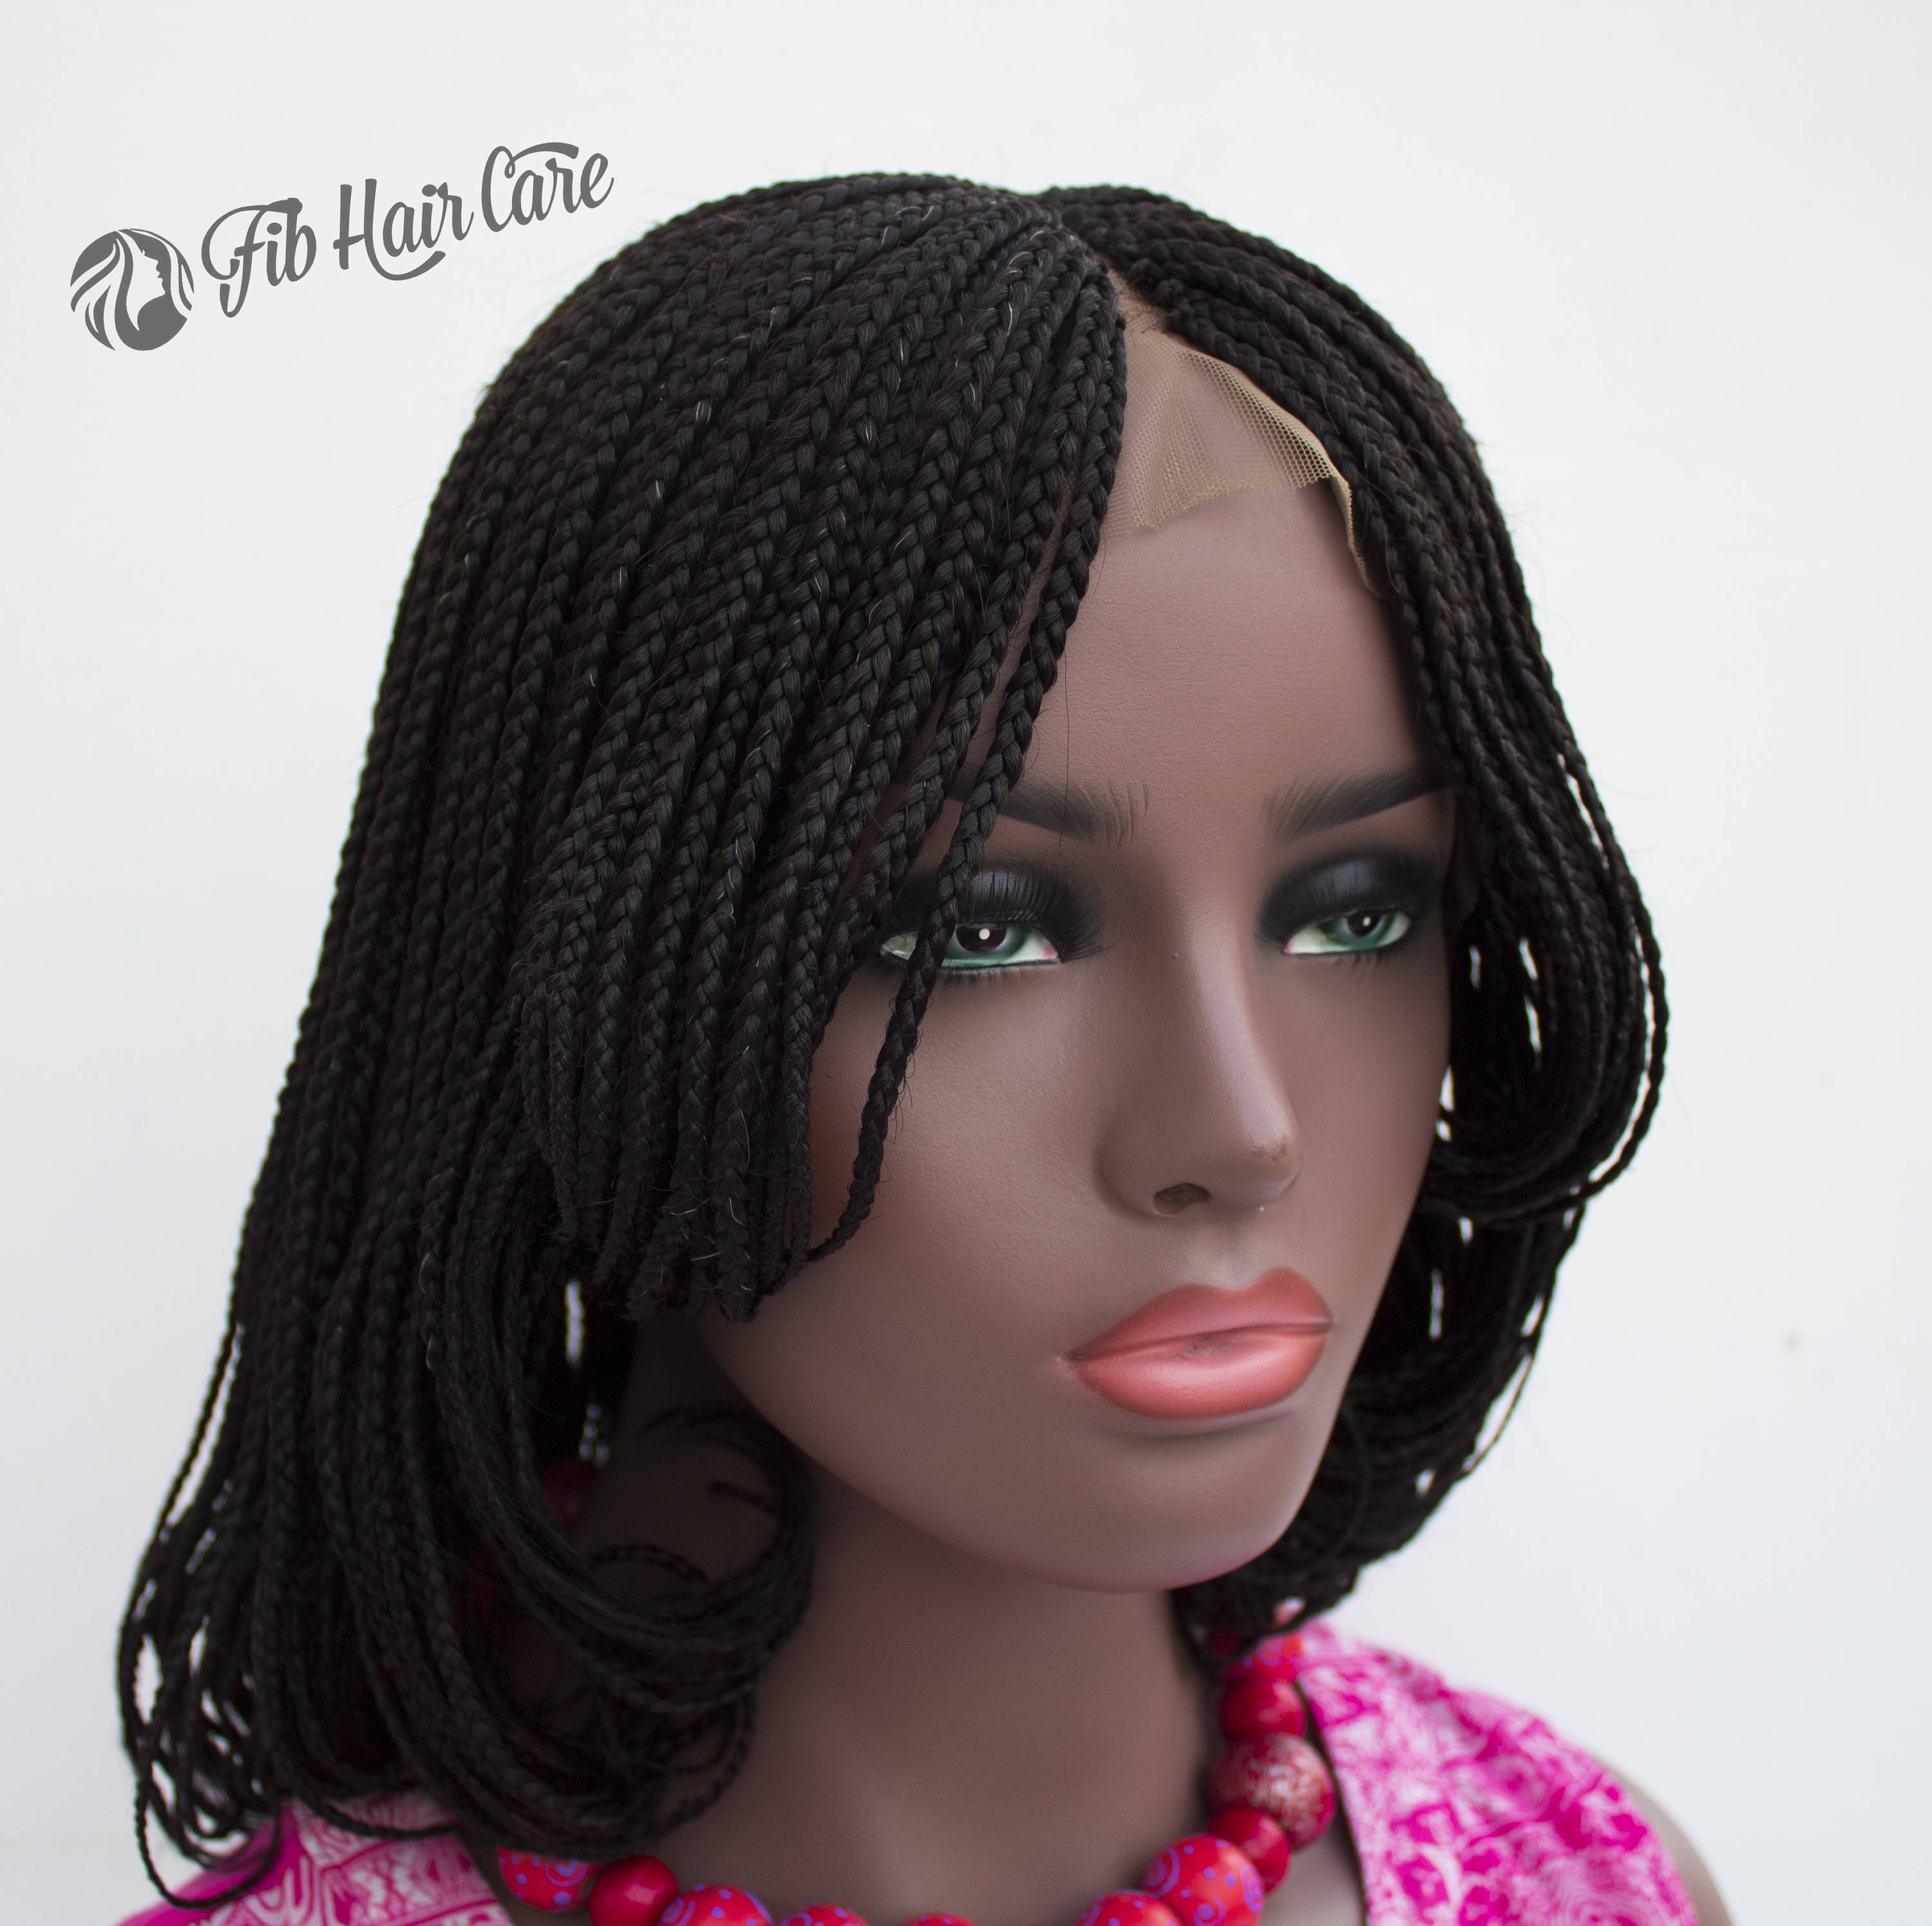 Braided Wig Amanda Bob Lace Front Full By Fib Hair Care